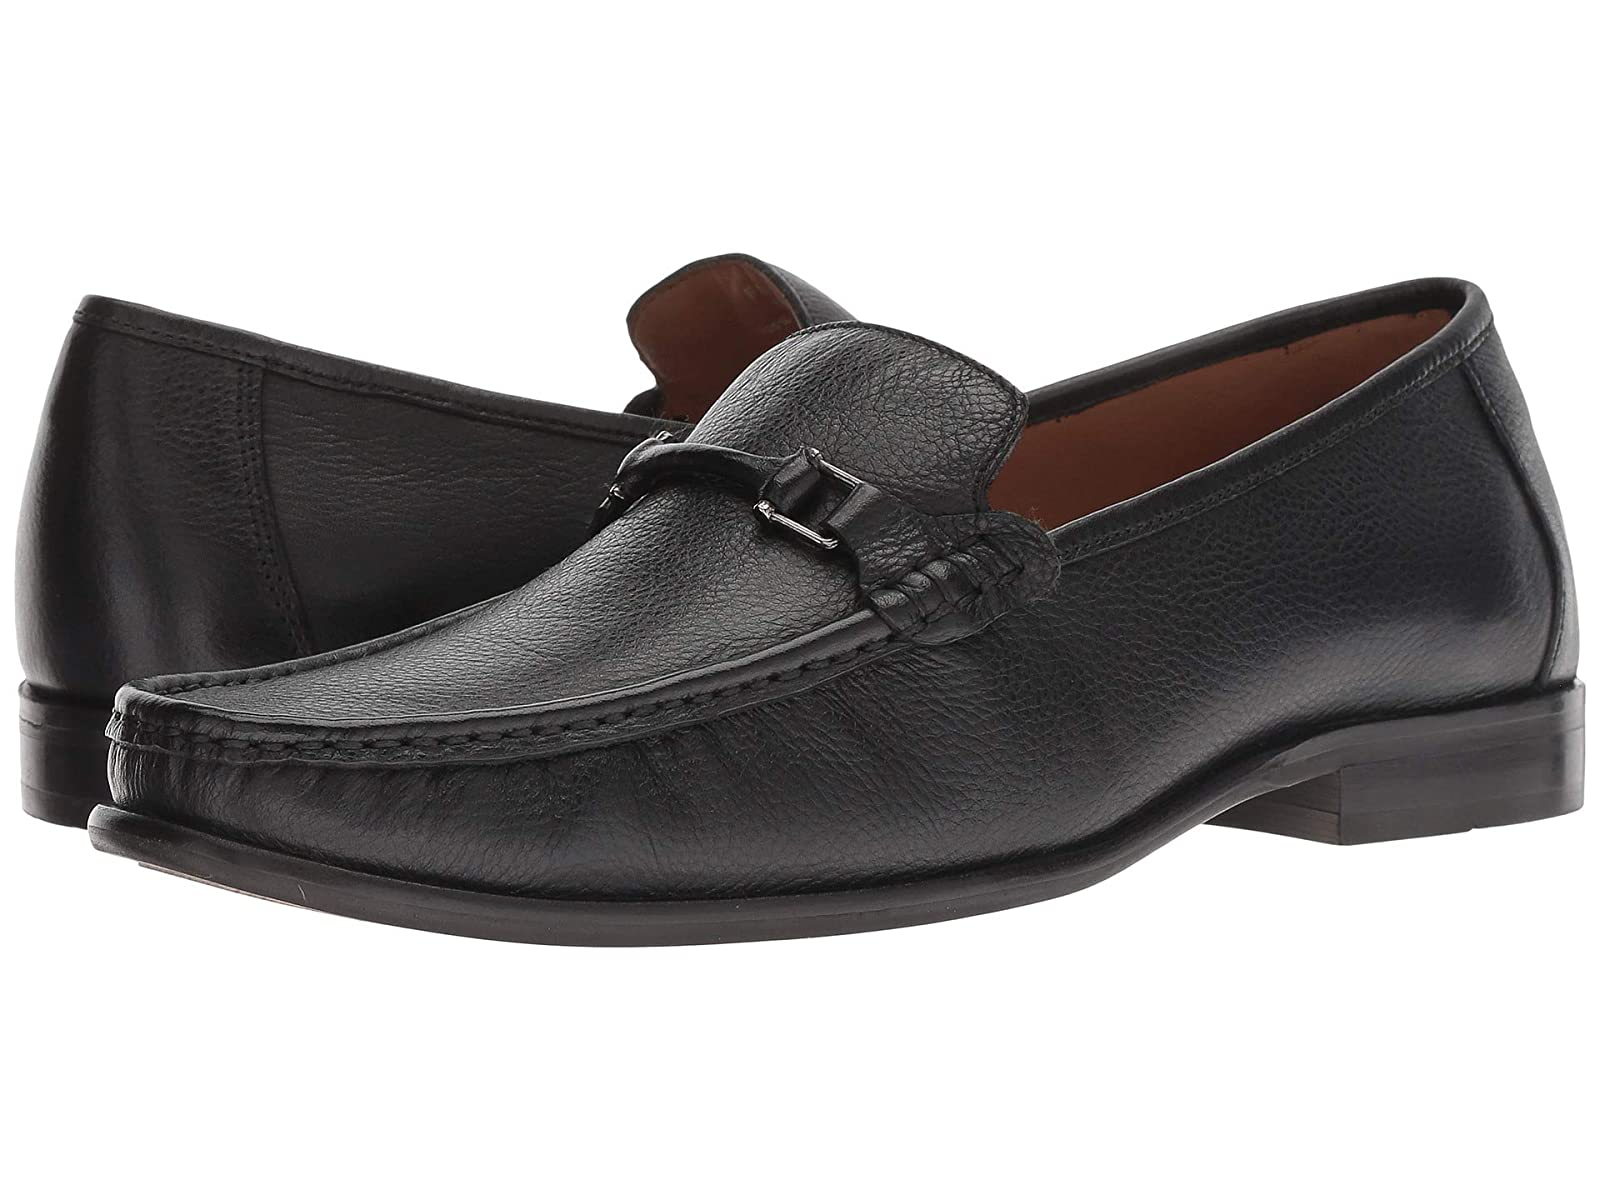 CARLOS by Carlos Santana Milagro Bit LoaferAtmospheric grades have affordable shoes